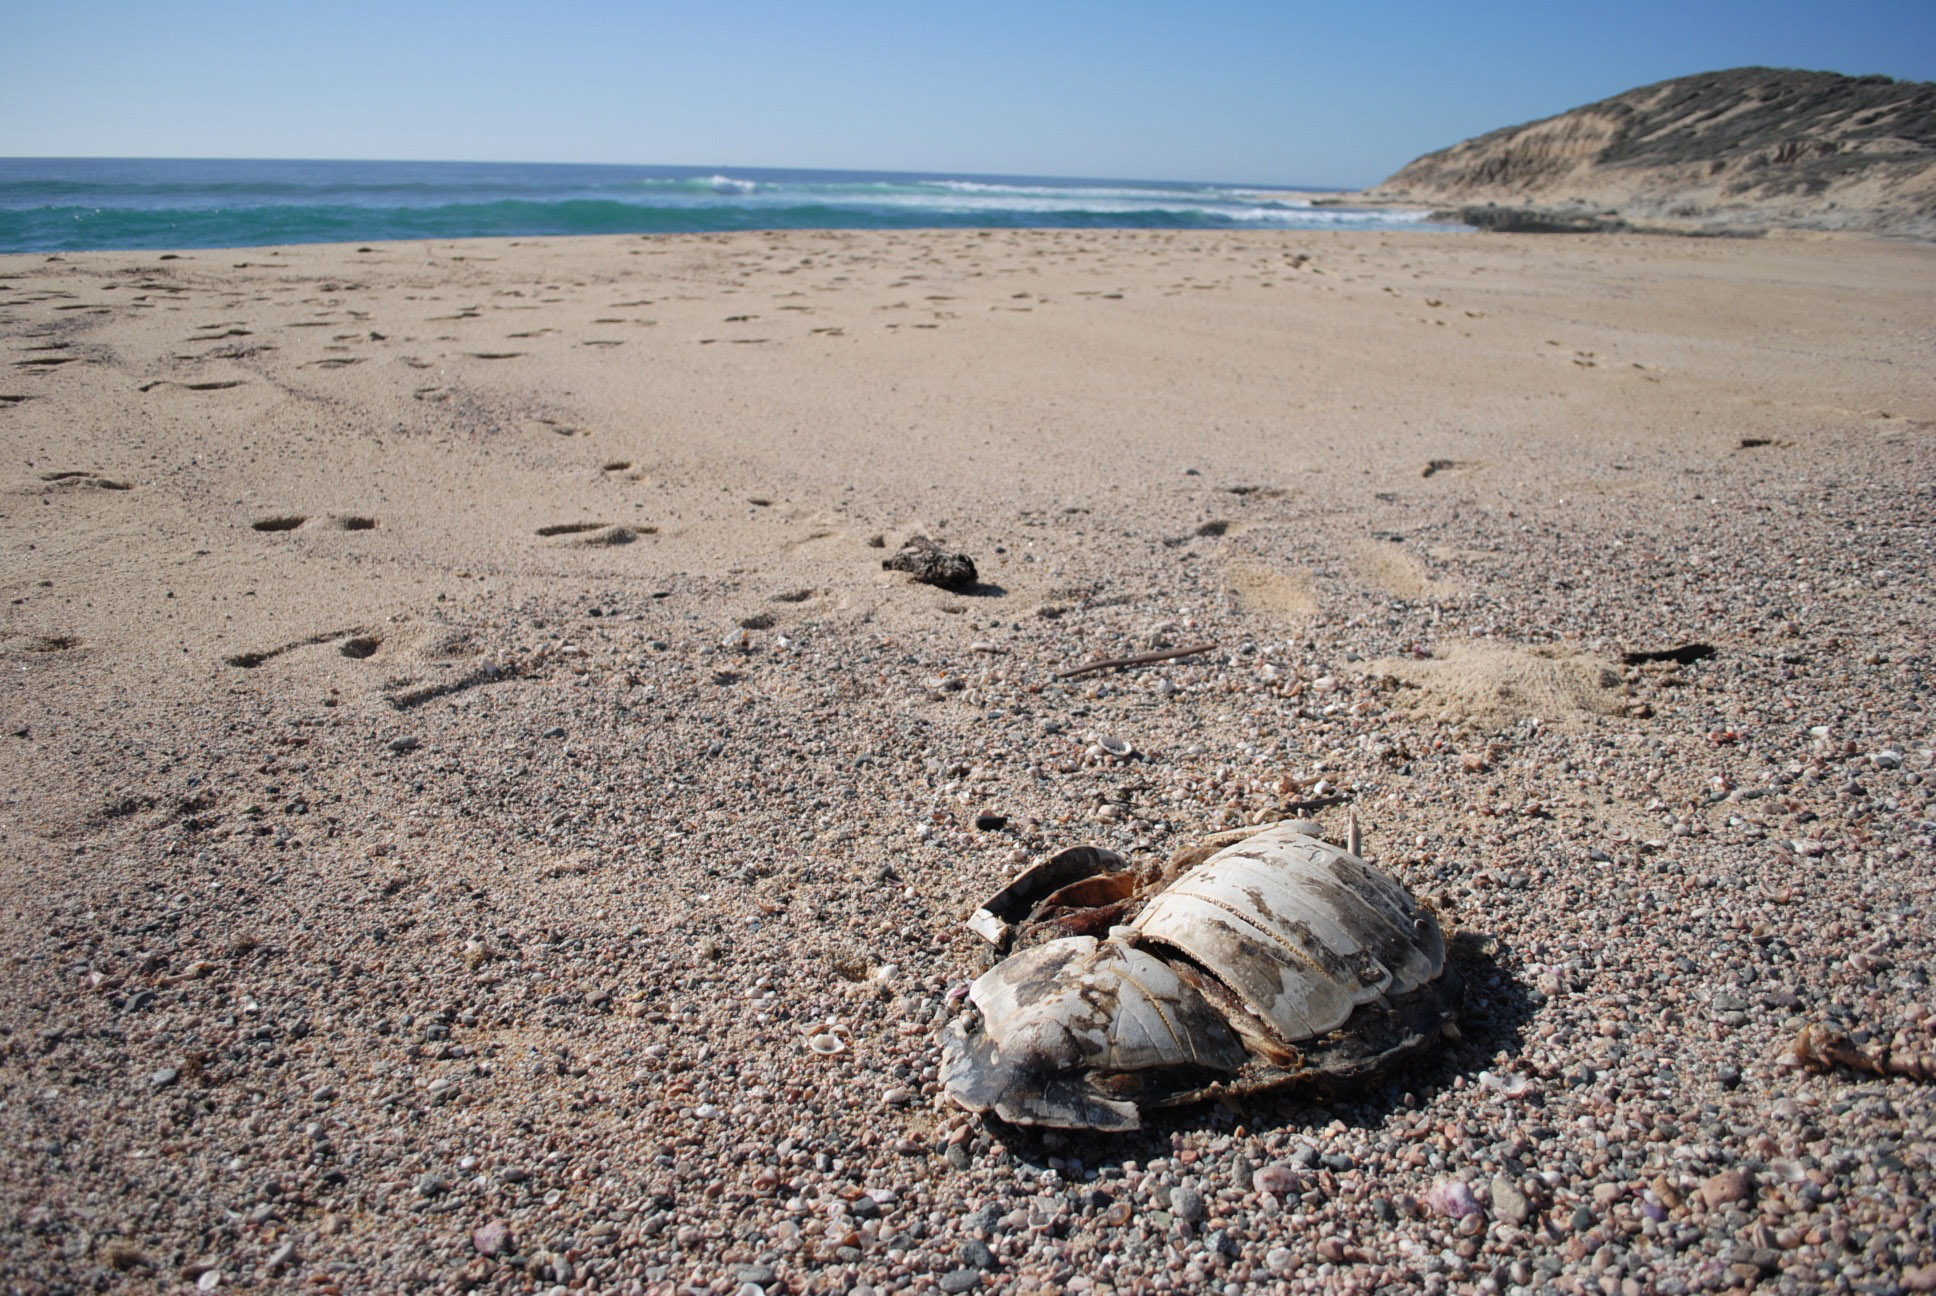 The carapace of a sea turtle carcass washed ashore.